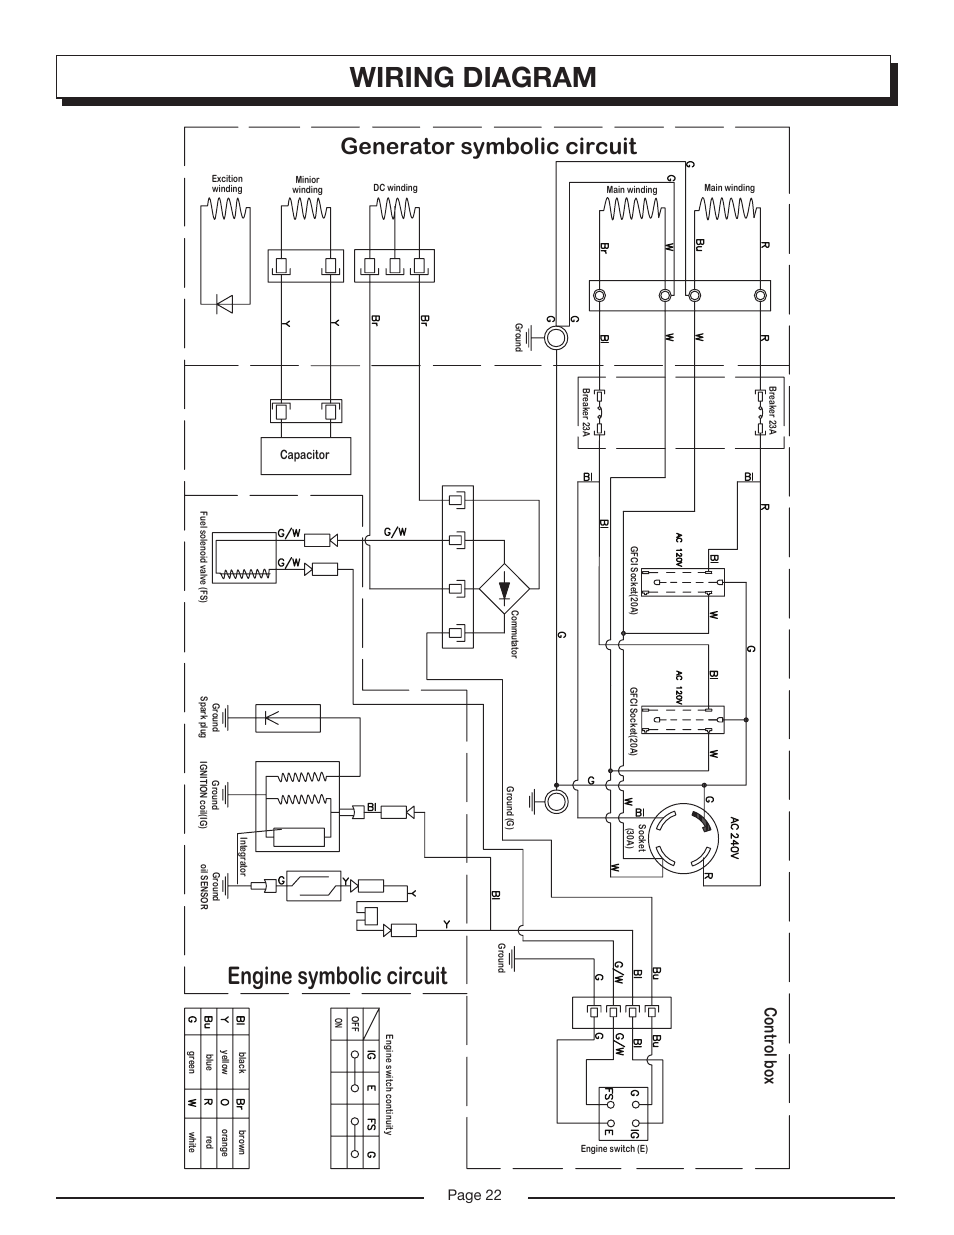 Wiring diagram, Engine symbolic circuit, Generator symbolic circuit |  Homelite HG6000 User Manual | Page 22 / 24